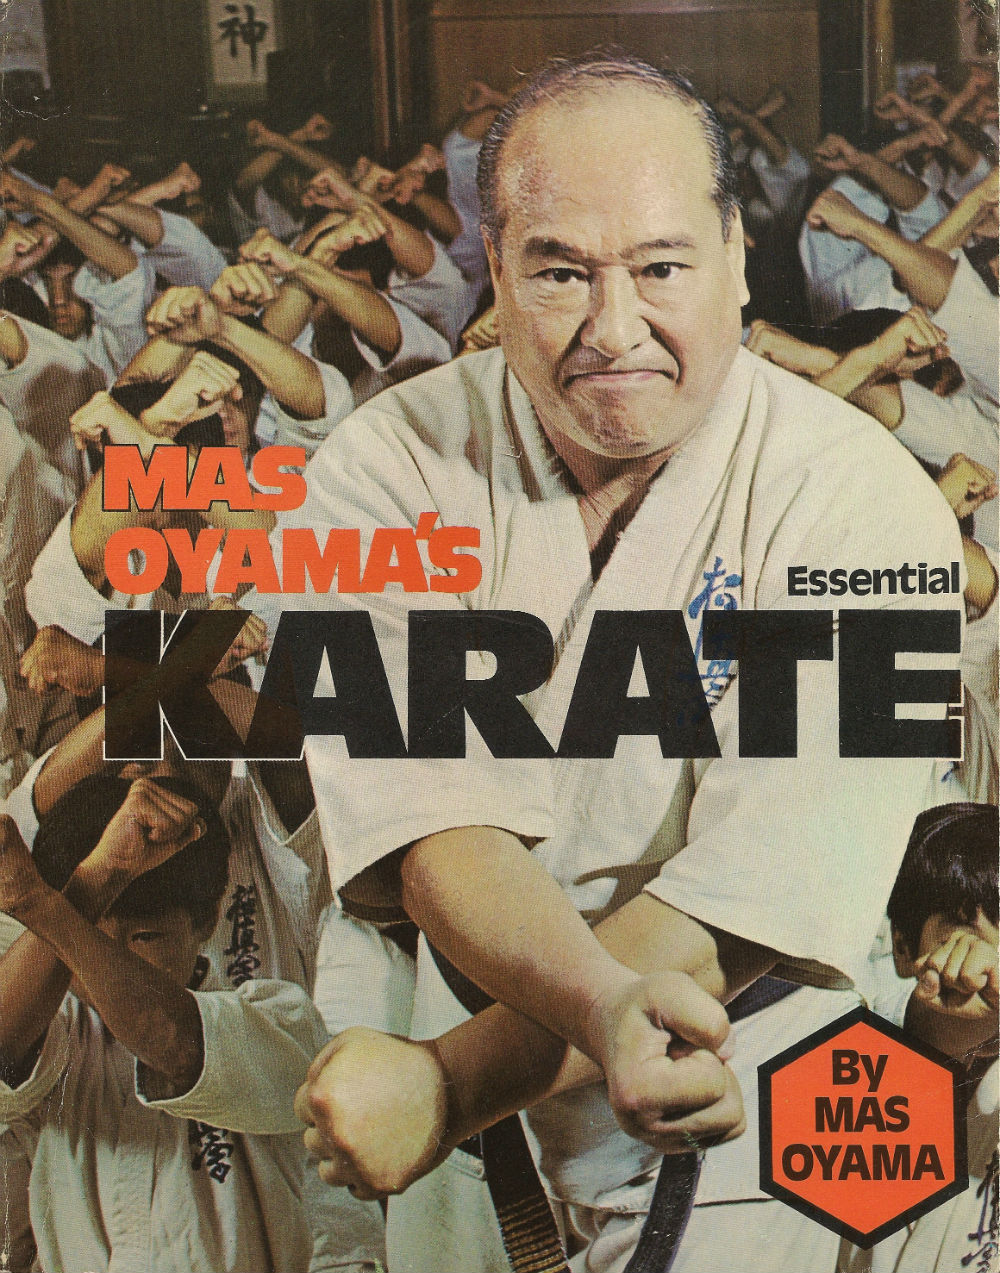 Book cover of Mas Oyama's karate